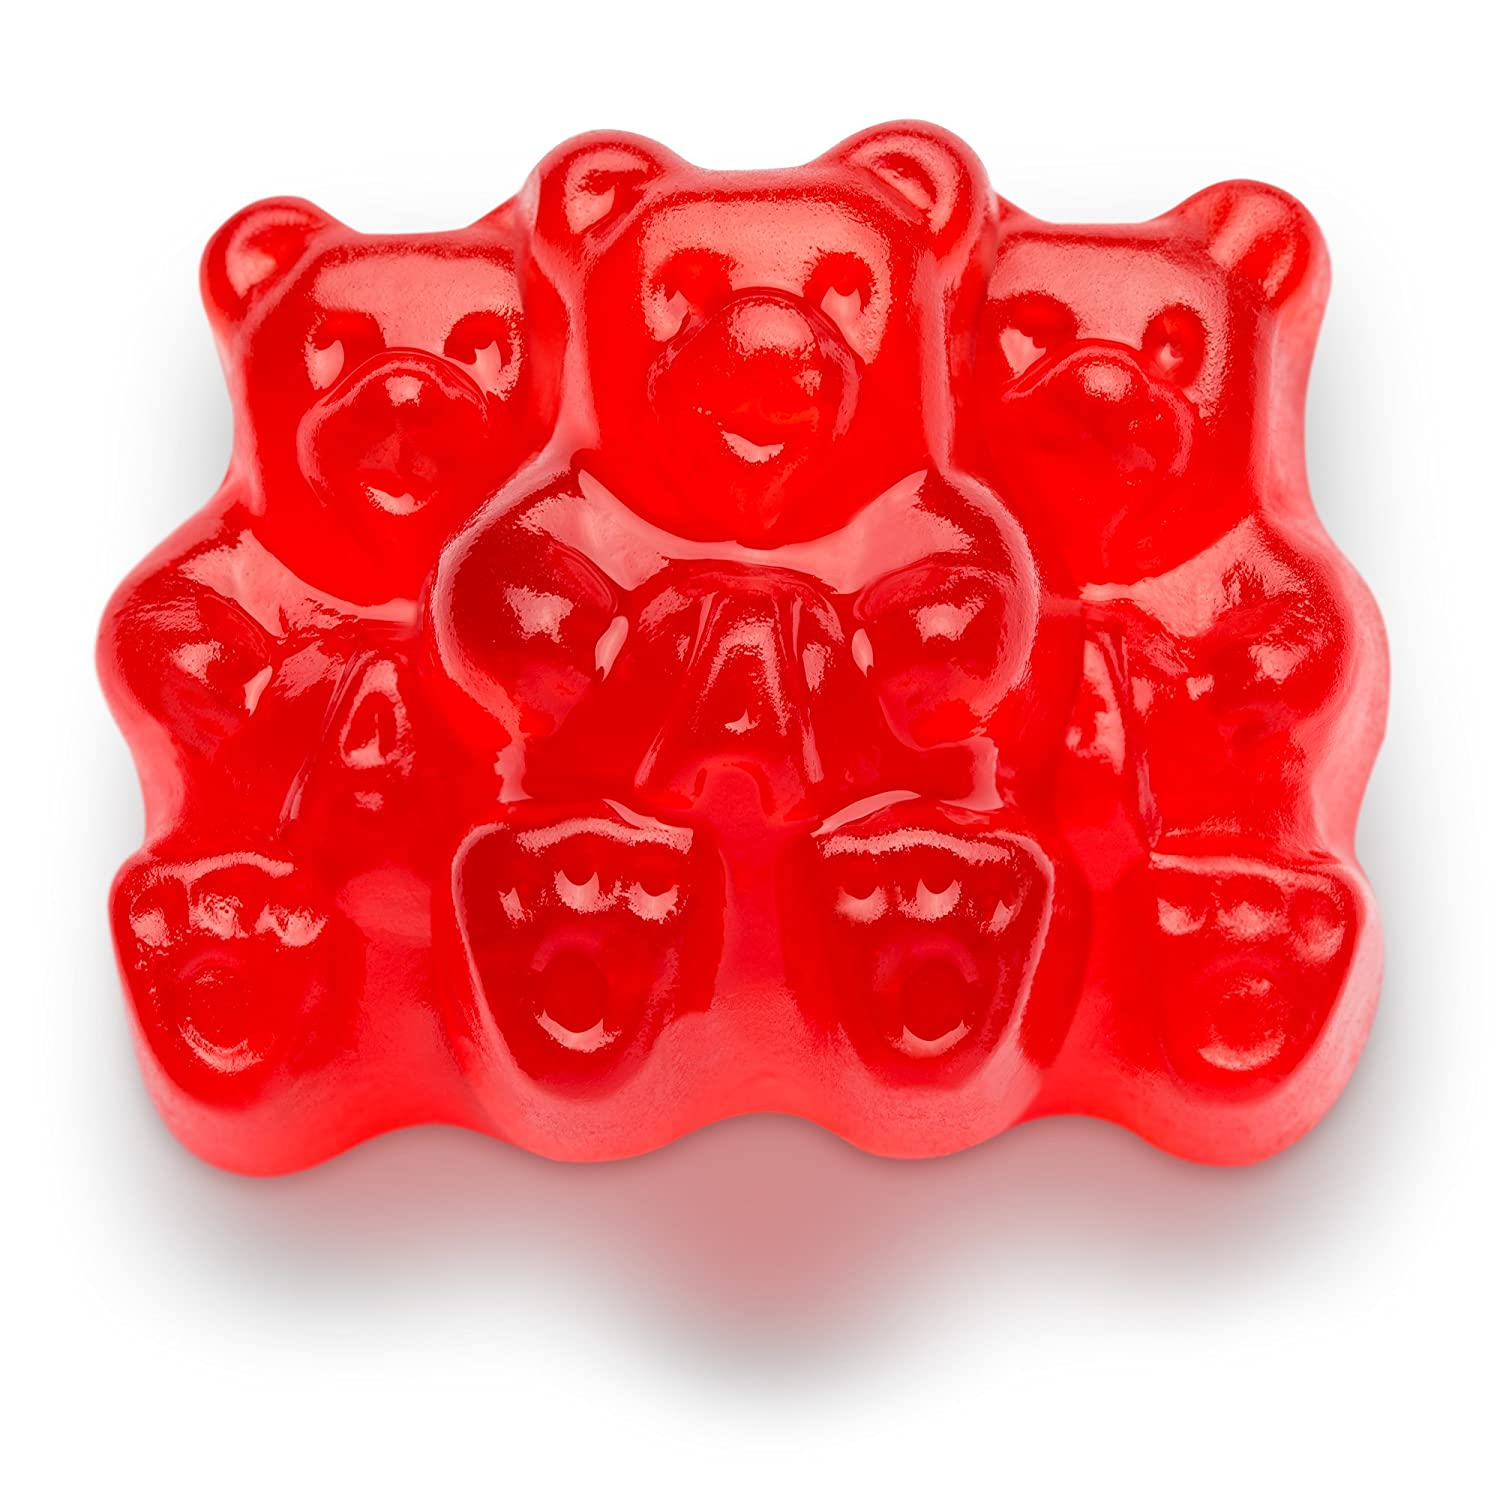 Haribo gummy bears are just one of many products that thomas - Amazon Com Albanese Candy Wild Cherry Gummi Bears 5 Pound Bag Gummy Candy Grocery Gourmet Food